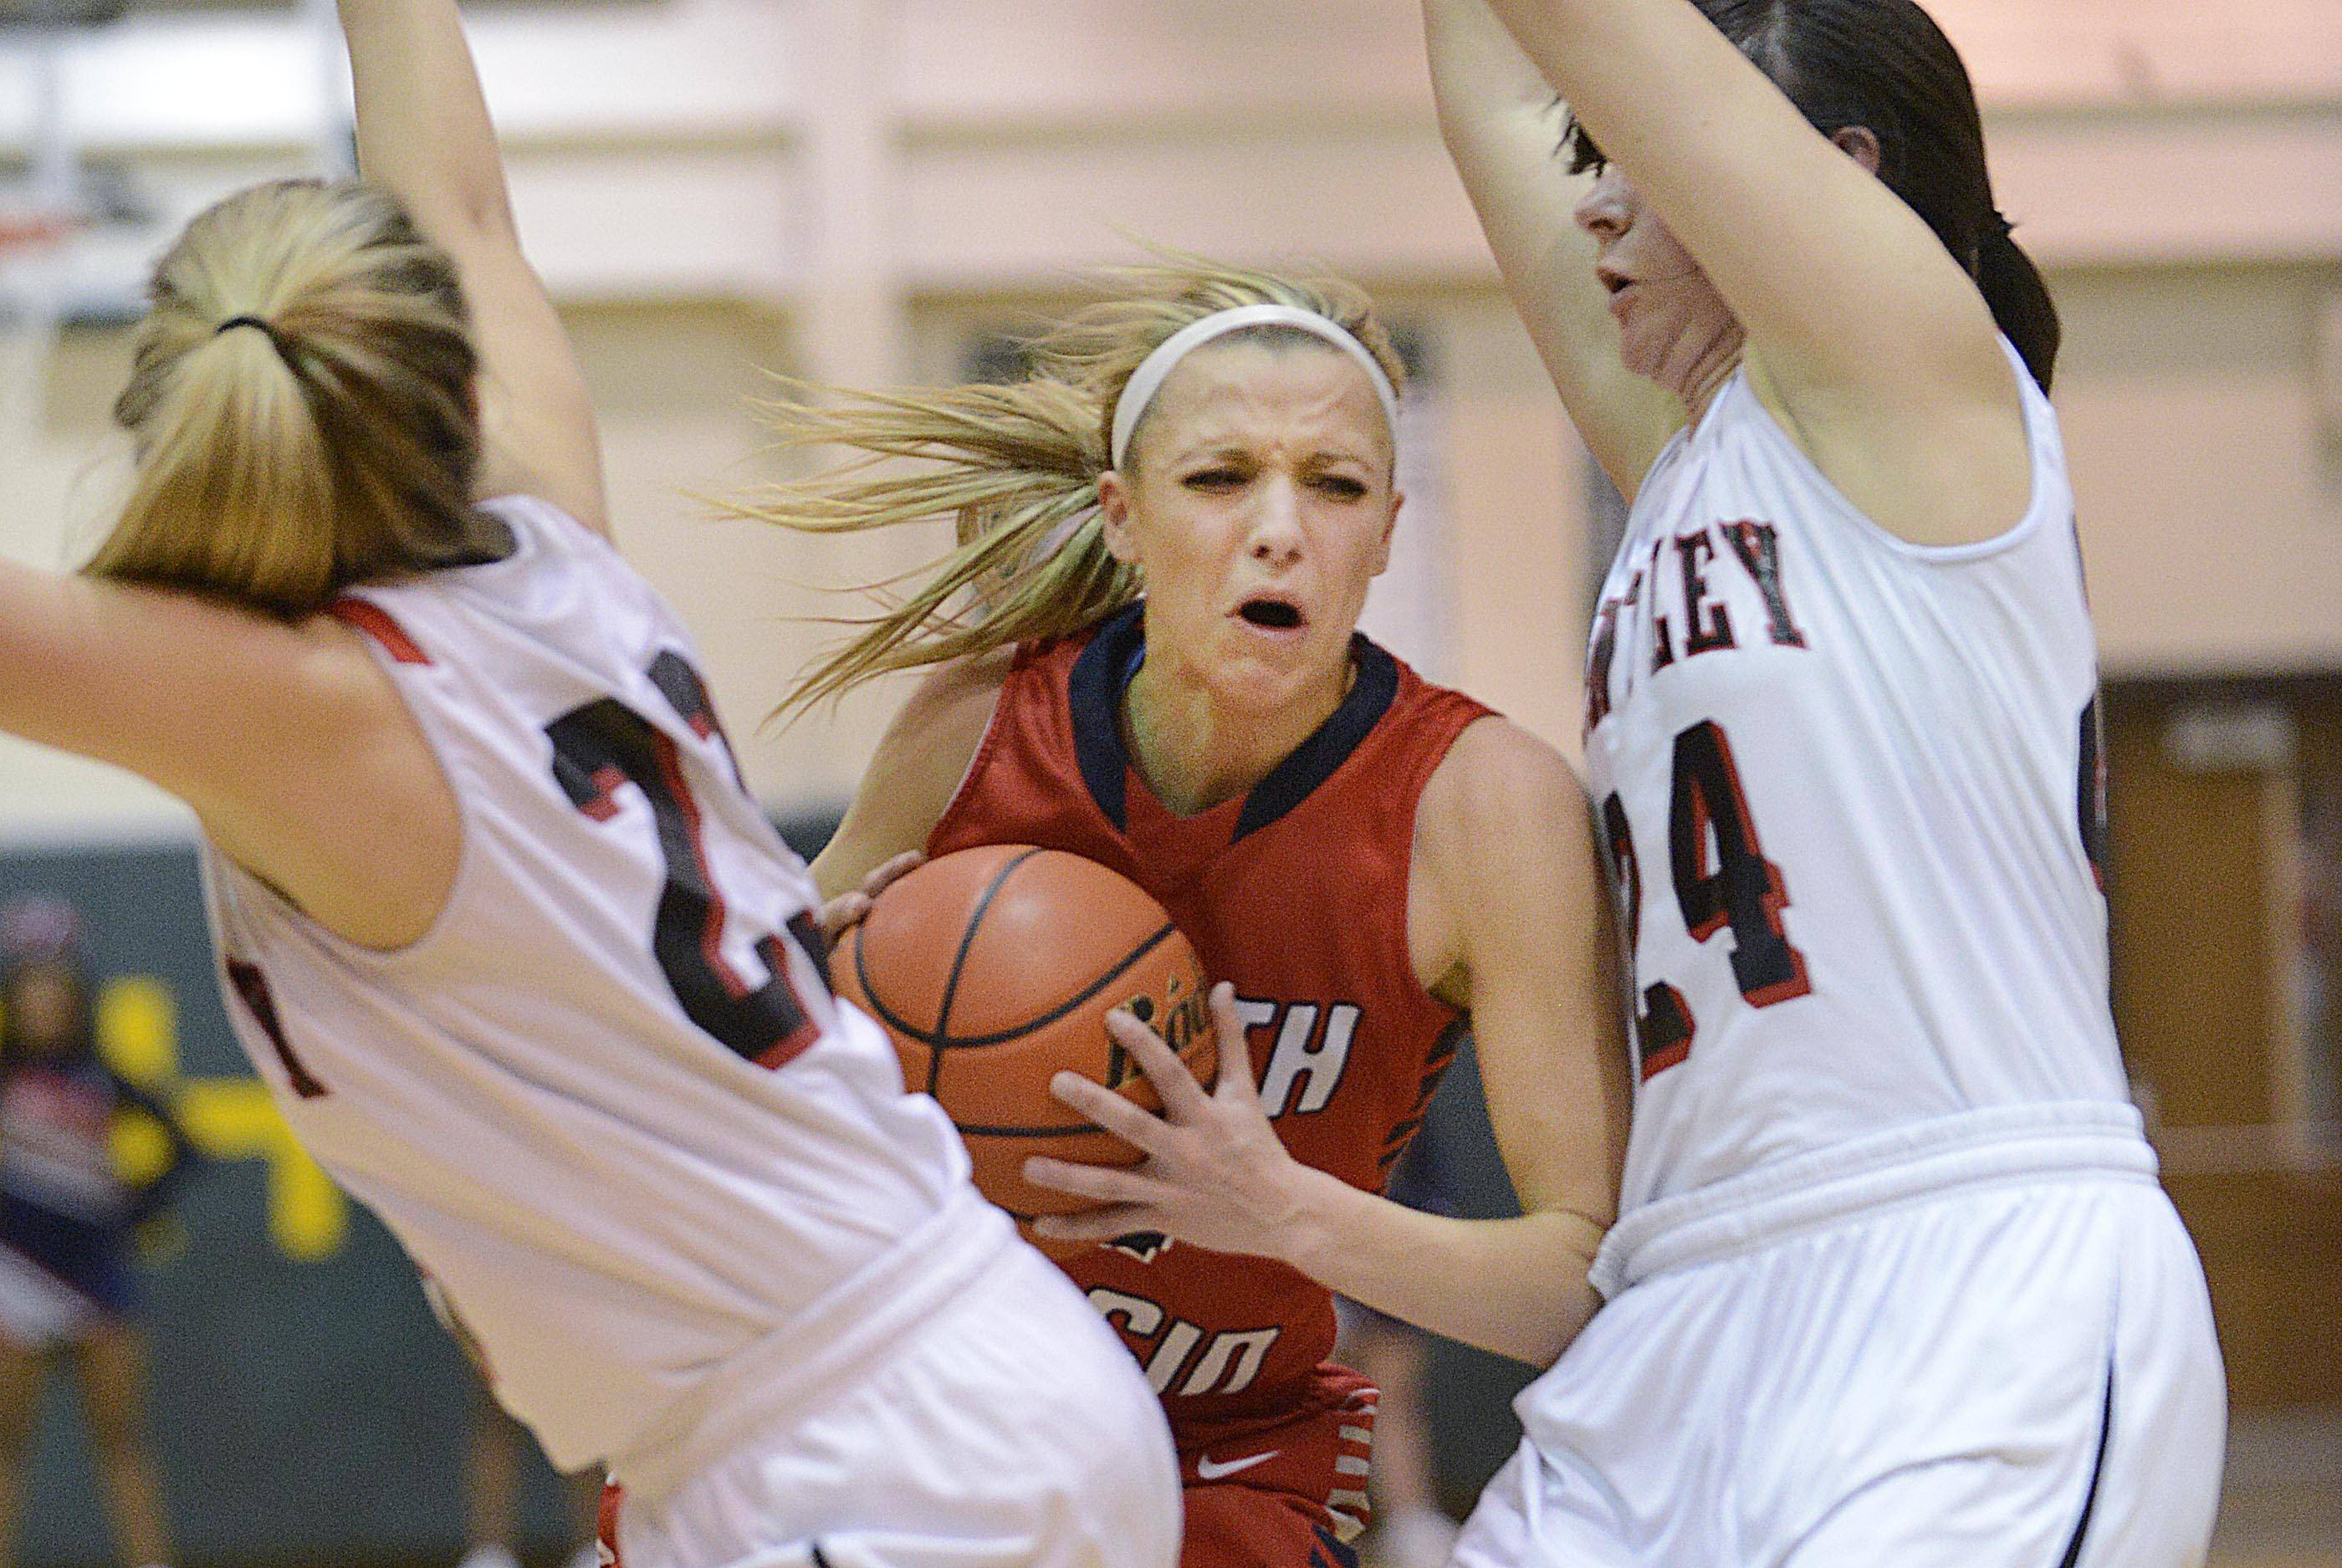 South Elgin's Savanah Uveges pushes through the defense of Huntley's Bethany Zornow and Jessica Brock in the Class 4A Crystal Lake South sectional game Tuesday.